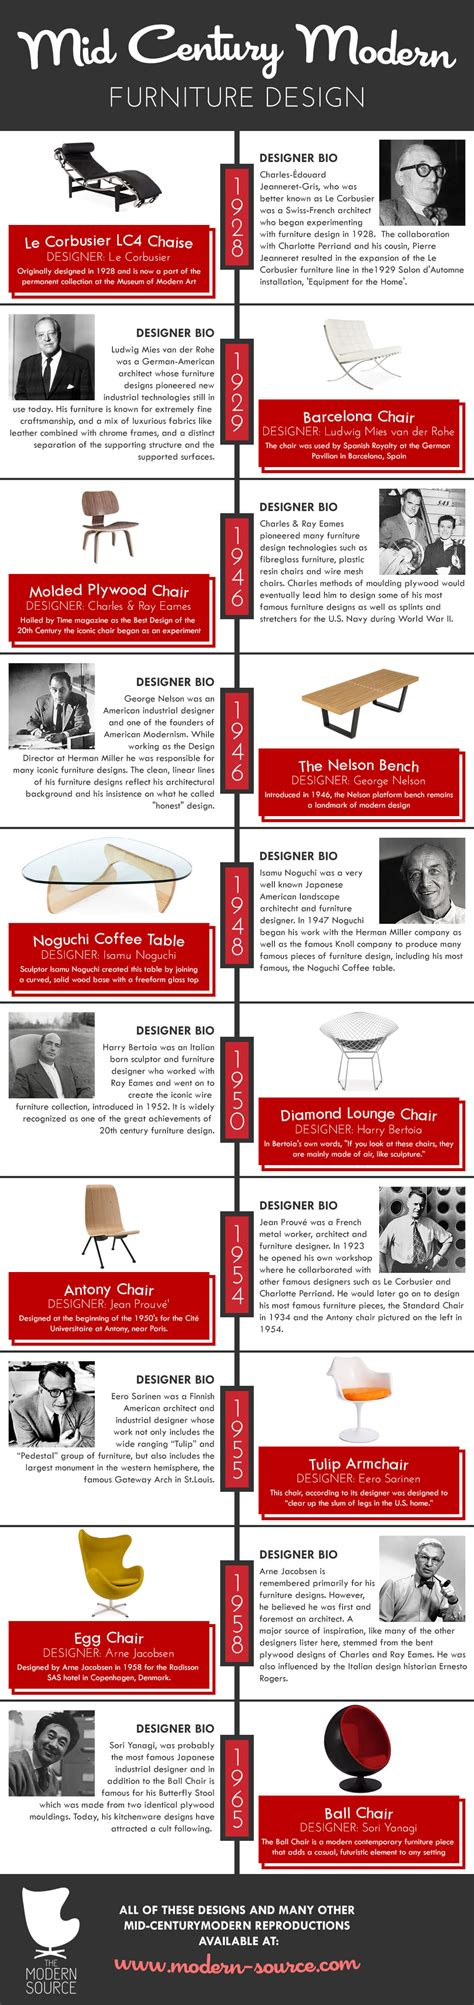 modern furniture history a history of mid century modern furniture design infographic